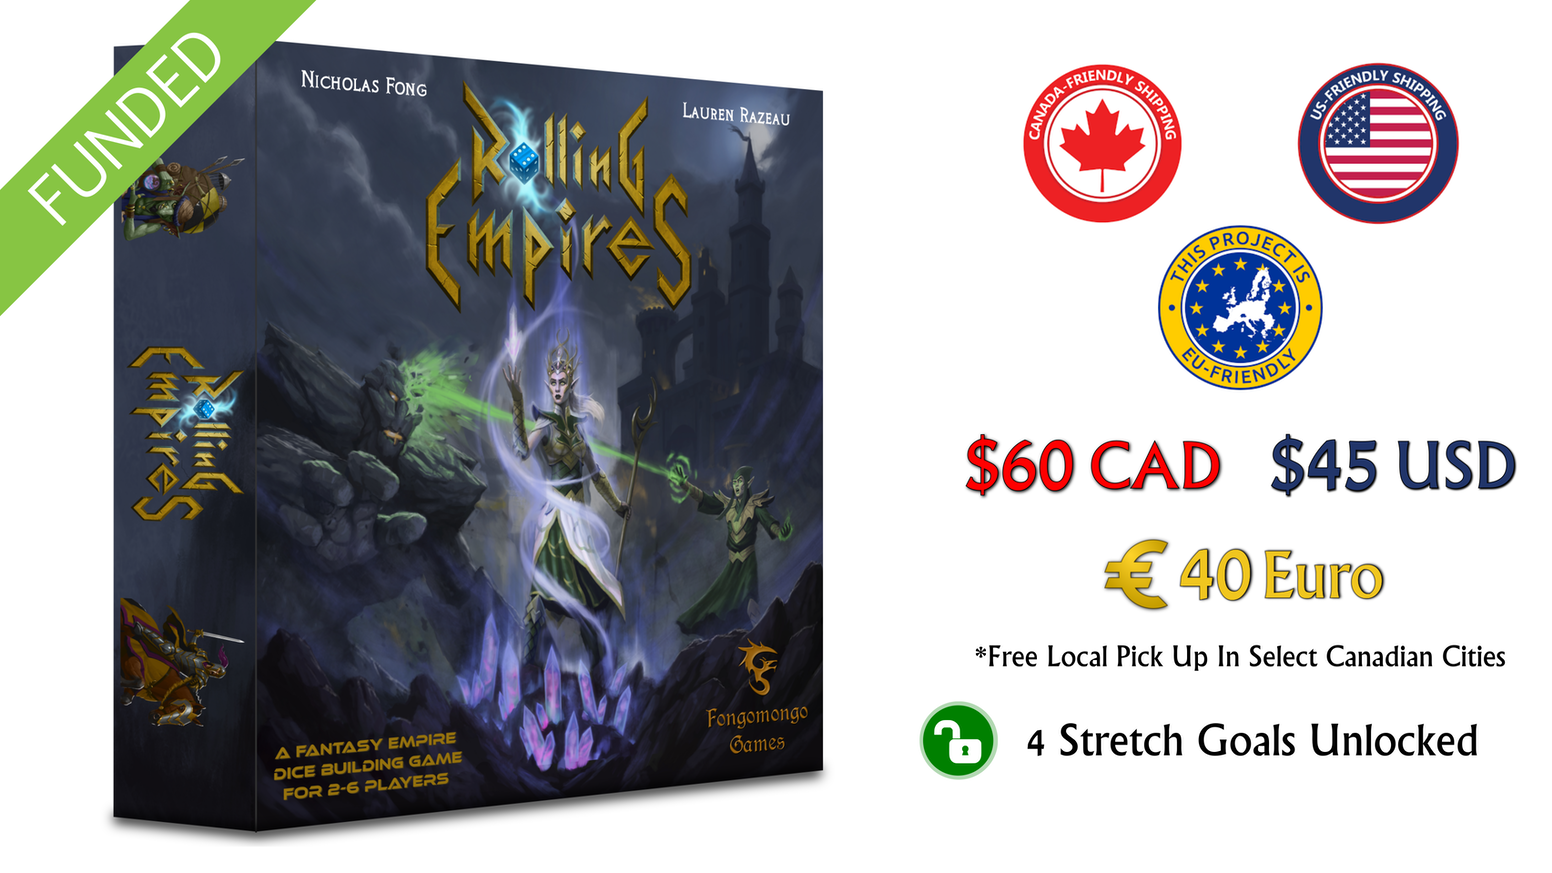 Lead your empire to glory by building a thriving city or conquering land and foreign empires in this fantasy dice building game!